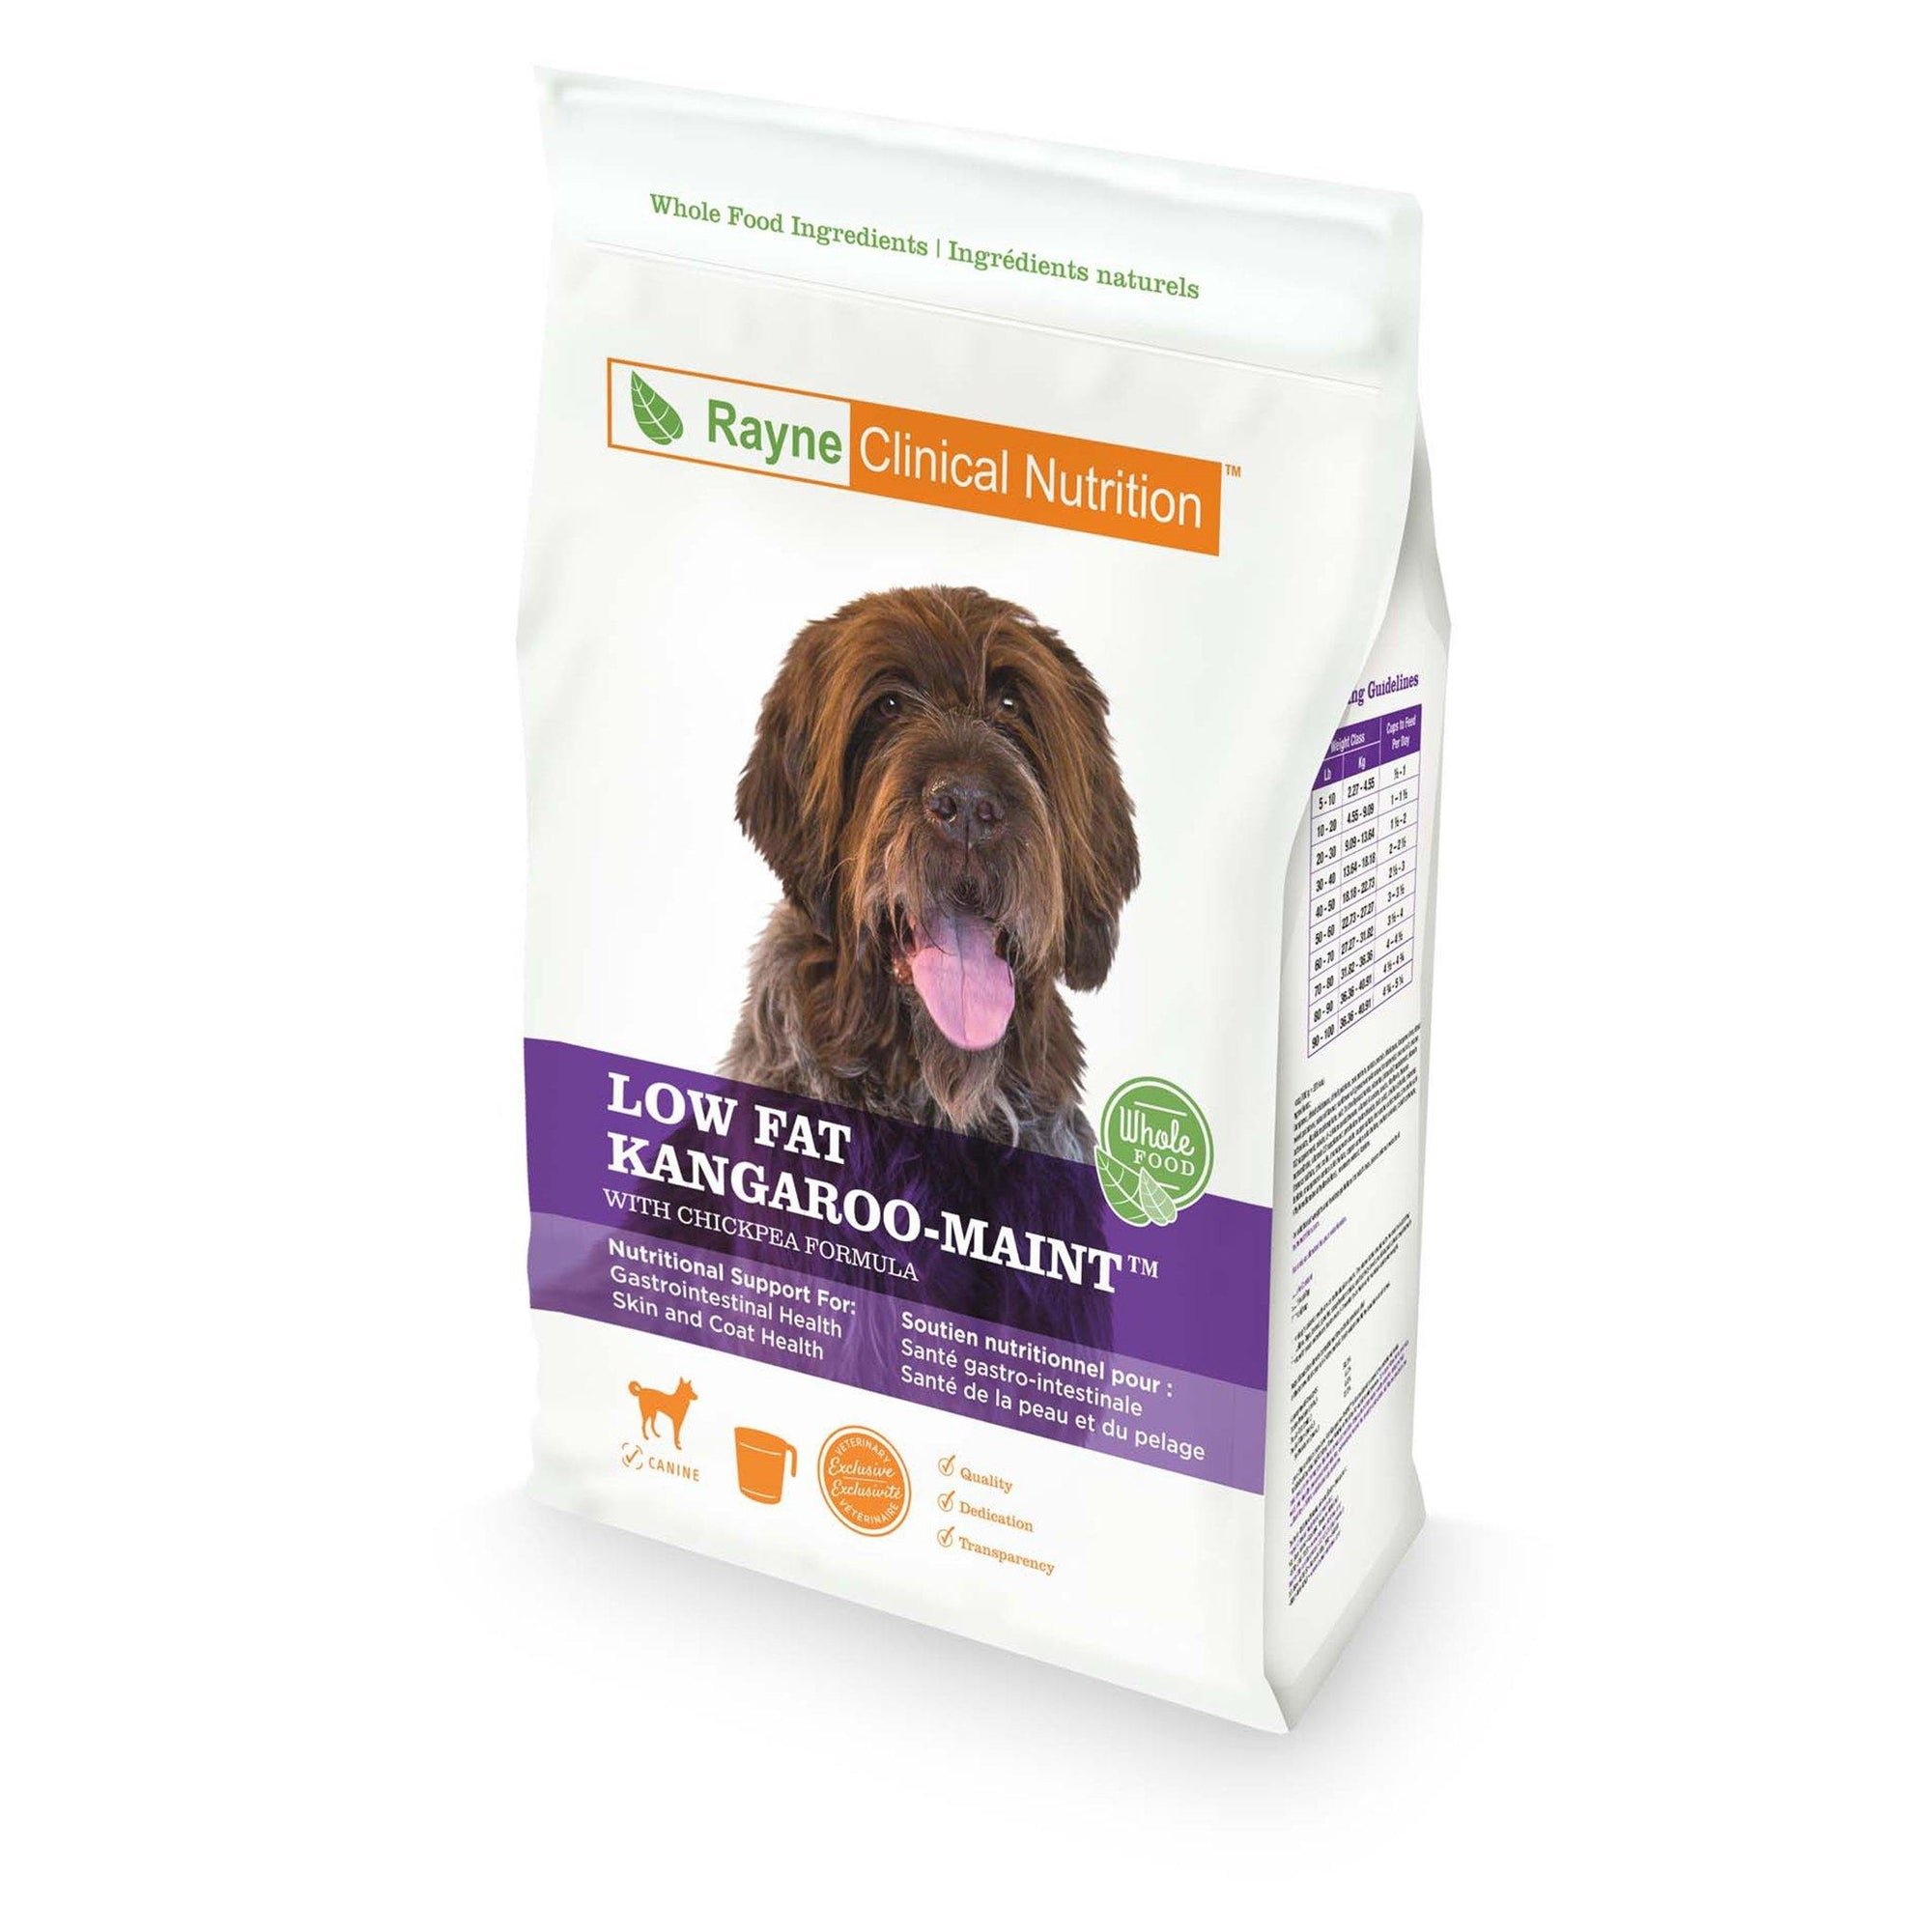 Low Fat Kangaroo-MAINT Canine Bag